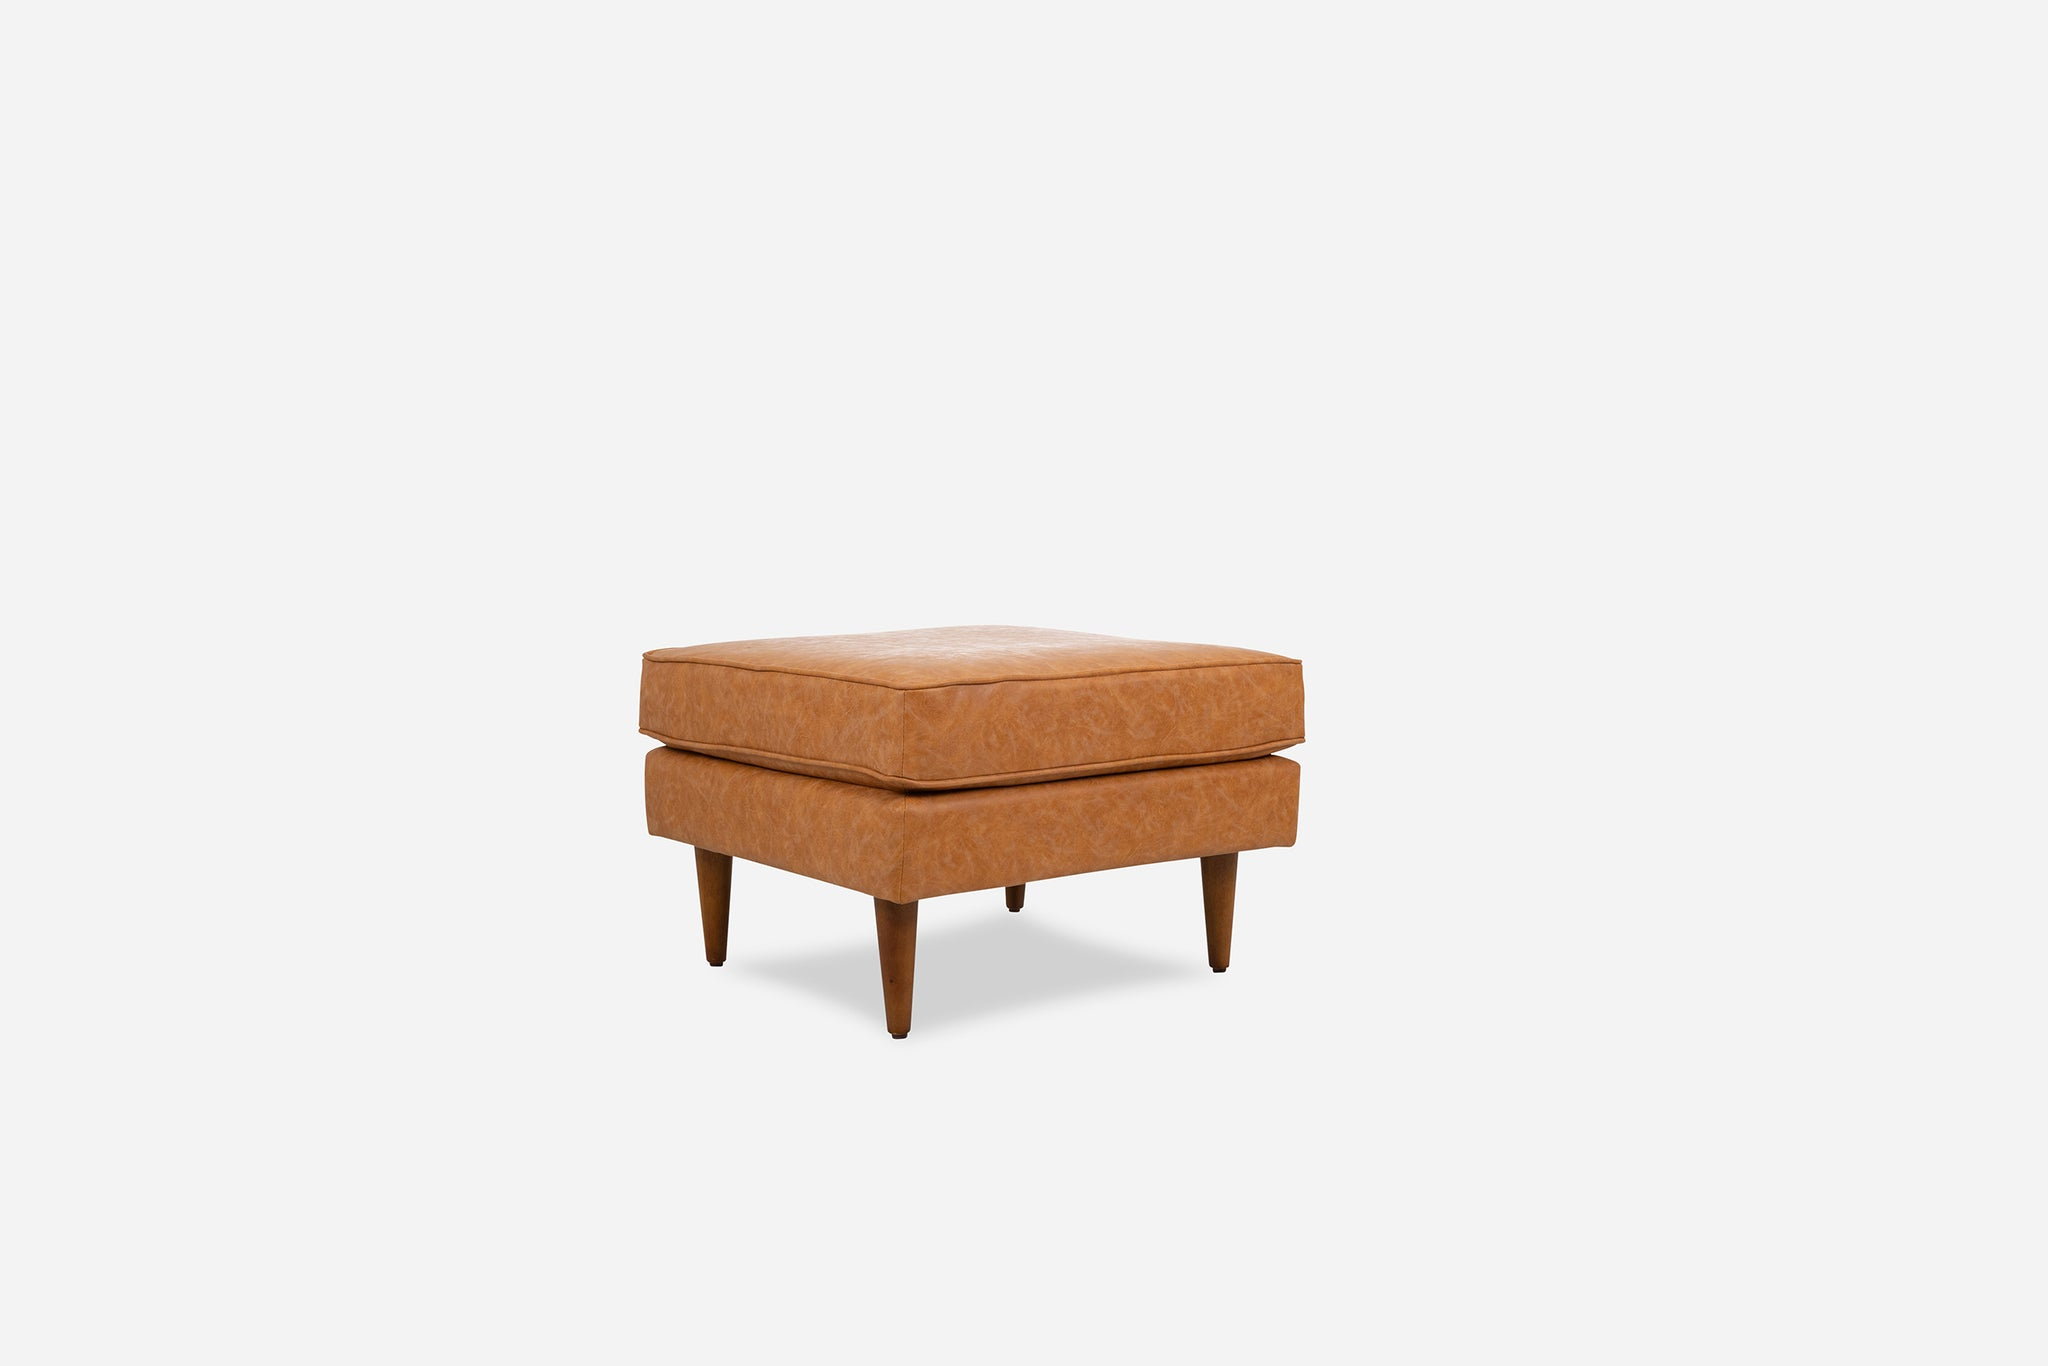 Distressed Vegan Leather Ottoman, Walnut Legs